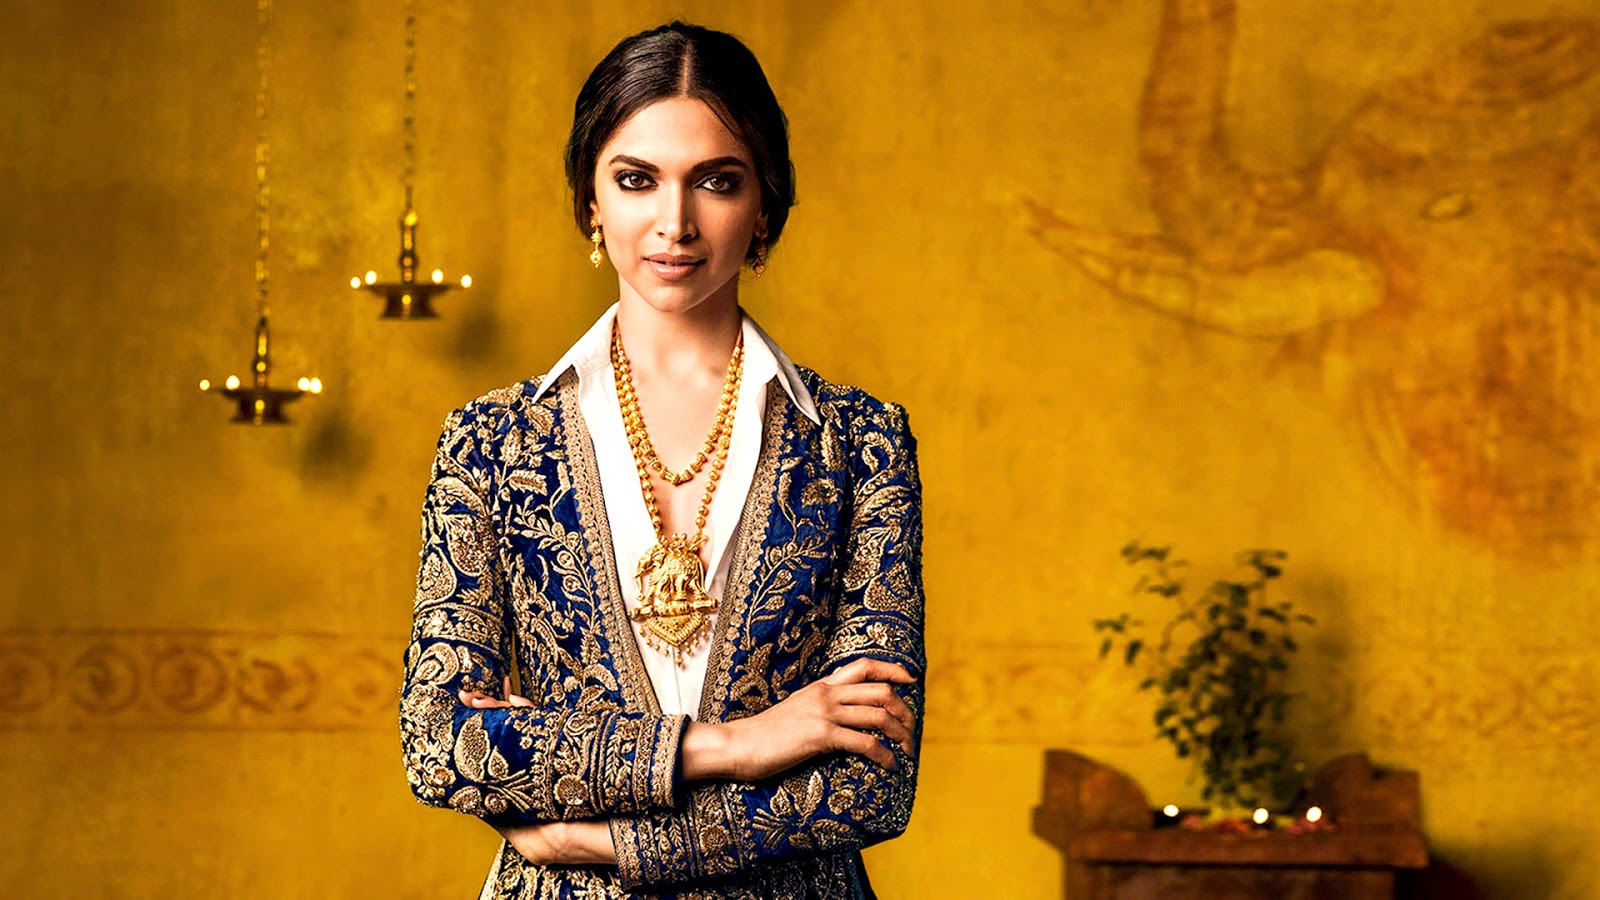 Deepika Padukone Wallpapers Hd Download Free 1080P -7707